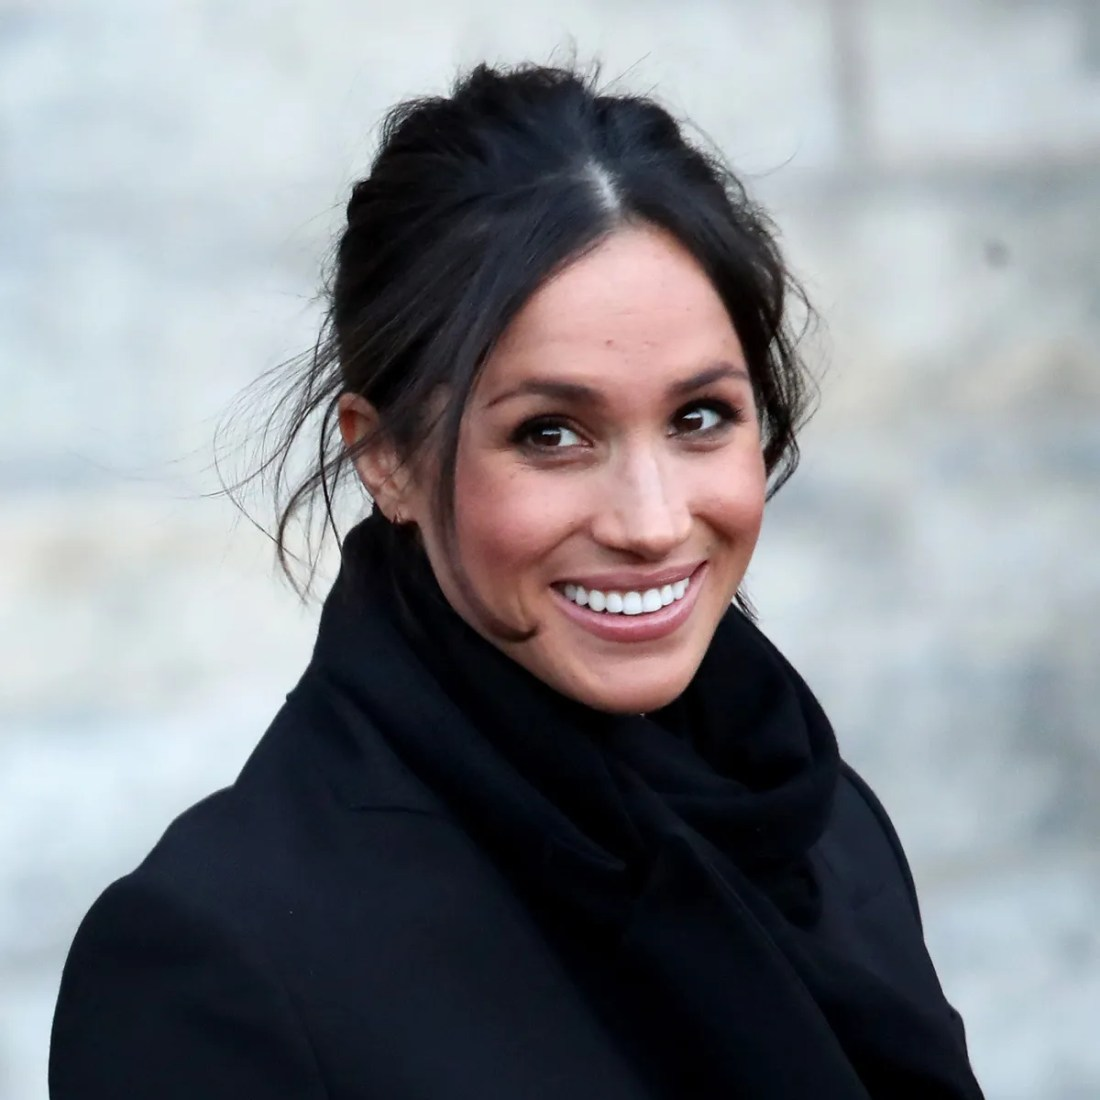 Meghan Markle and Prince Harry Leave Royal Duties